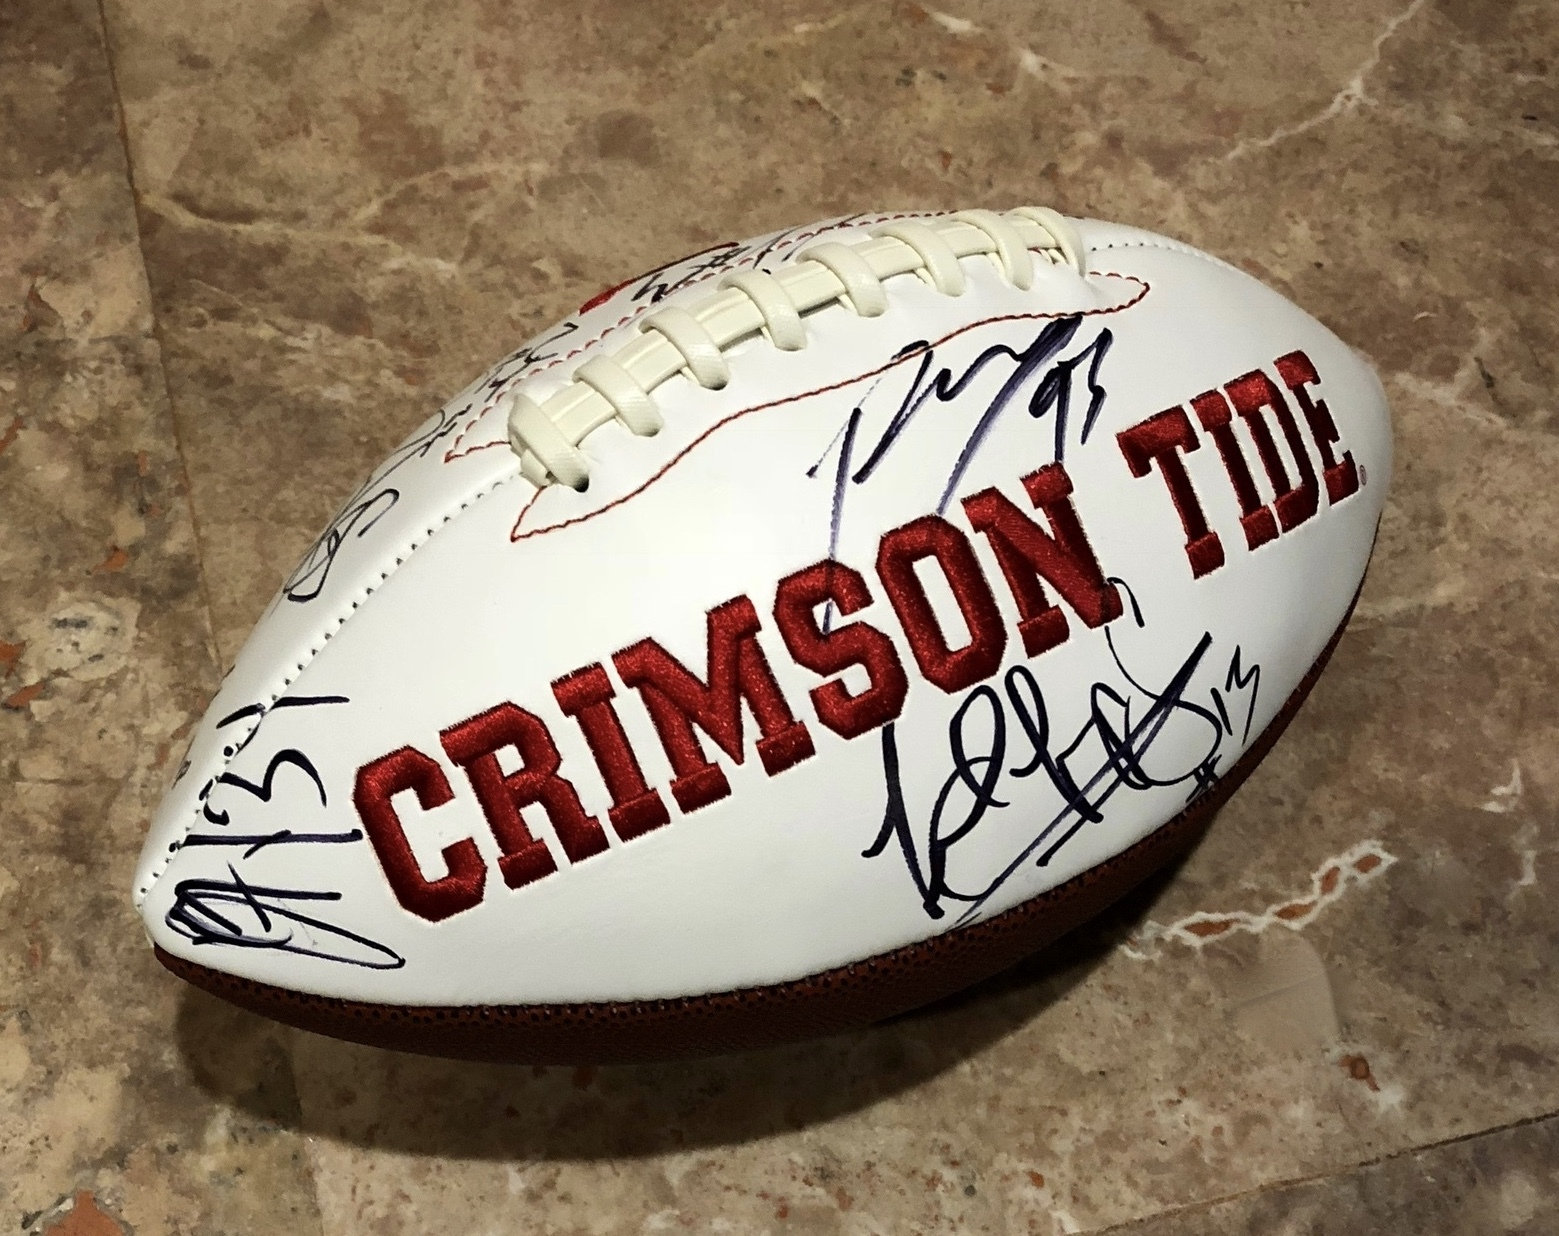 2017-18 ALABAMA CRIMSON TIDE TEAM SIGNED Autographed FOOTBALL CHAMPS TUA w/COA